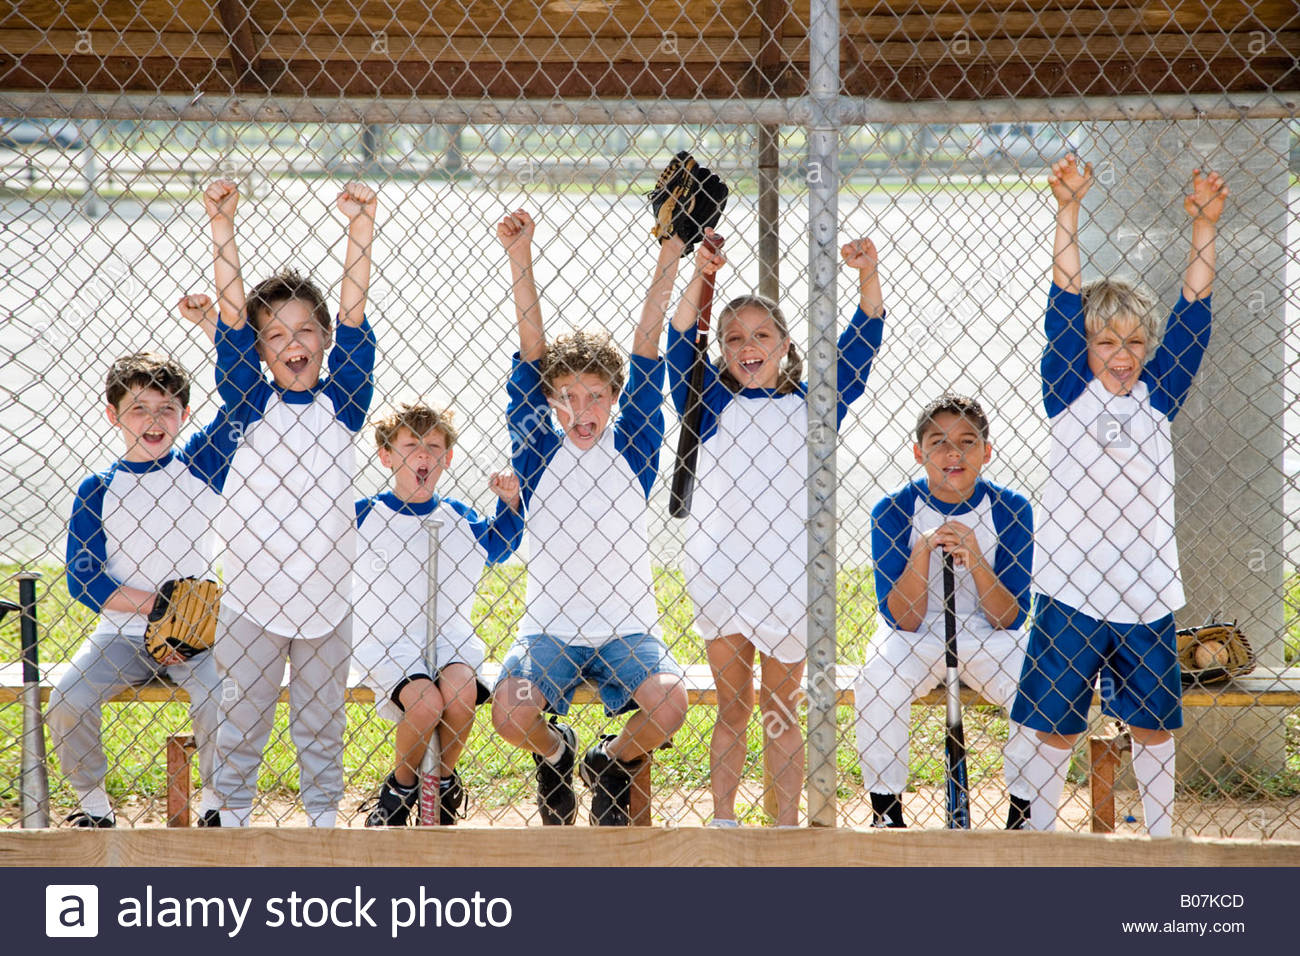 Little league baseball team cheering behind wire fence - Stock Image